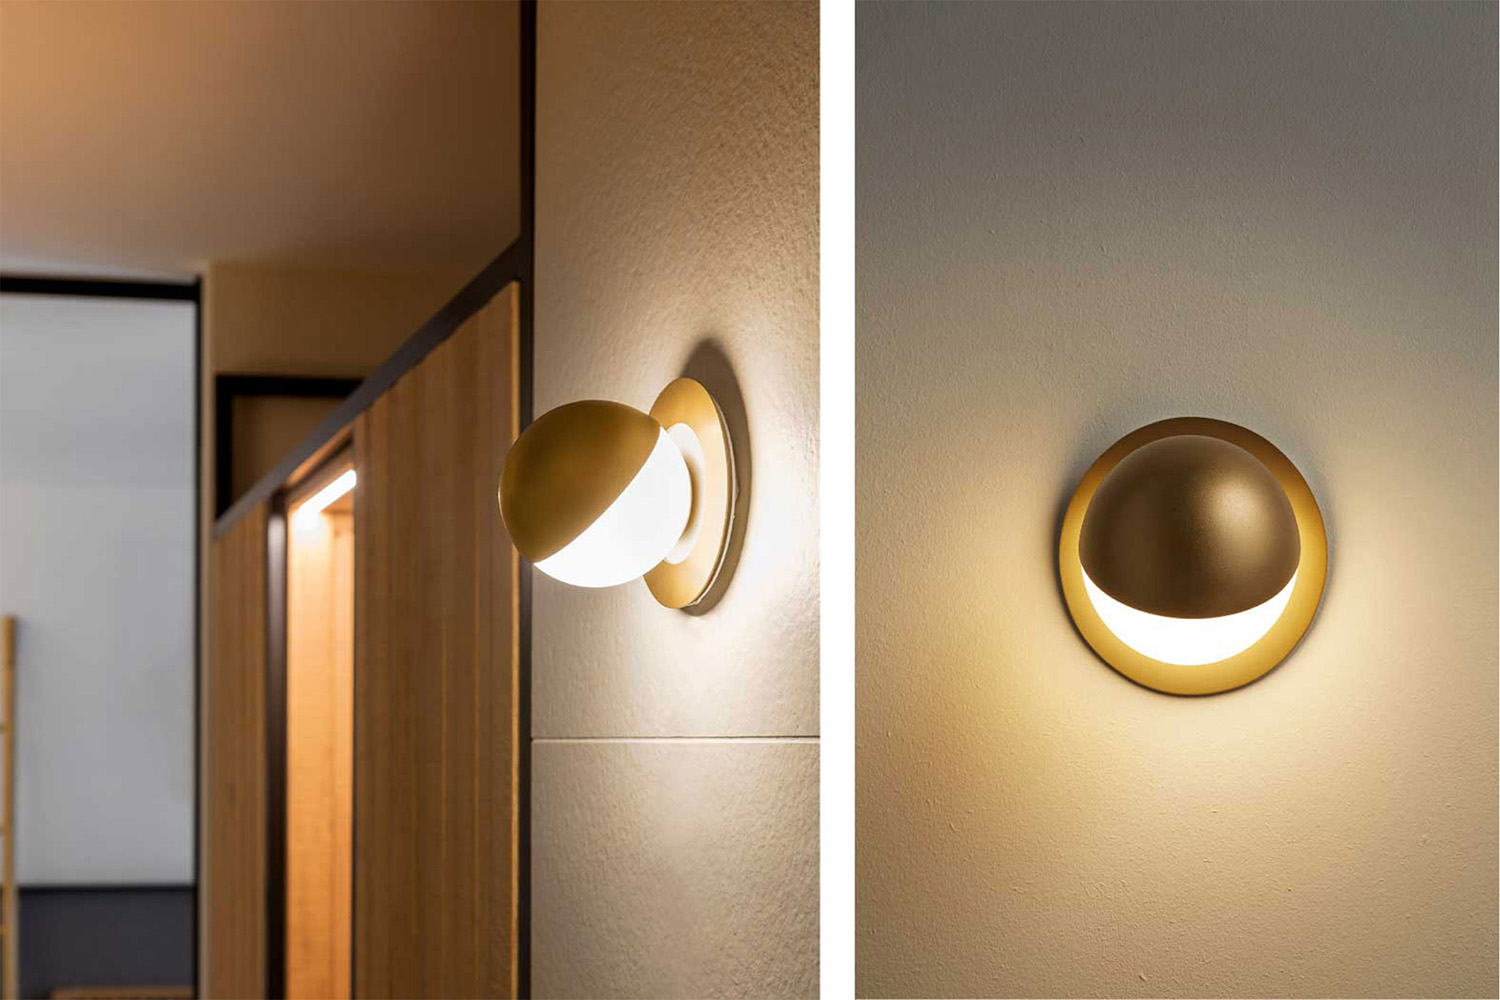 More information of Estiluz ALFI wall lamp